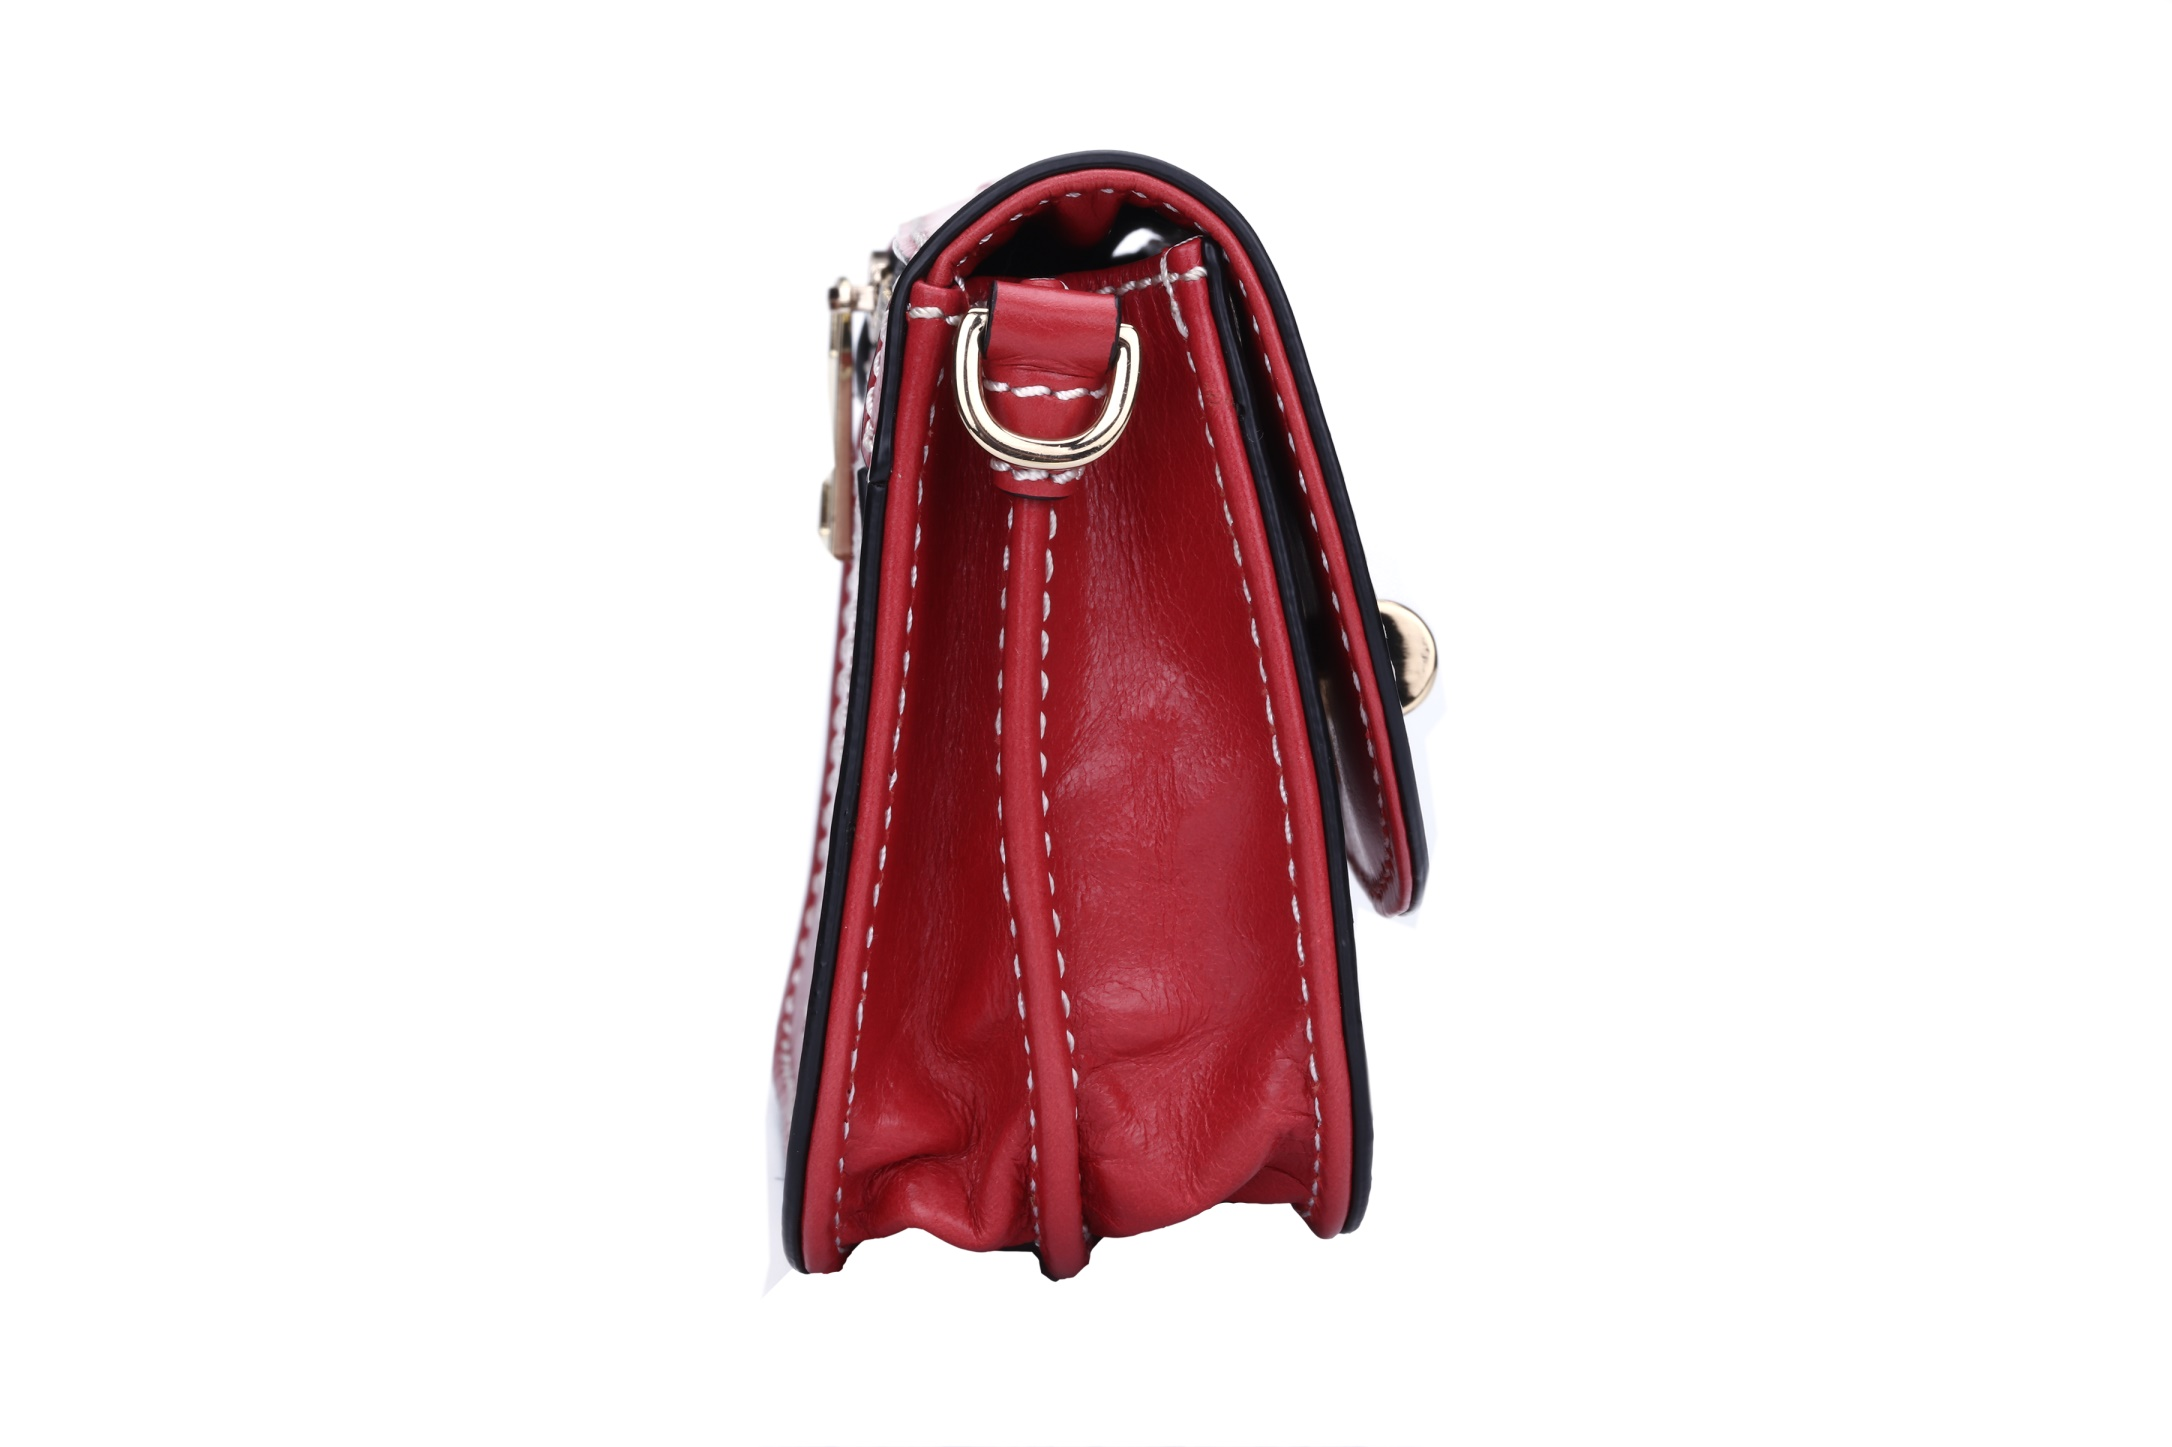 GF bags-Evening Clutch Bags small genuine leather with metal lock-2